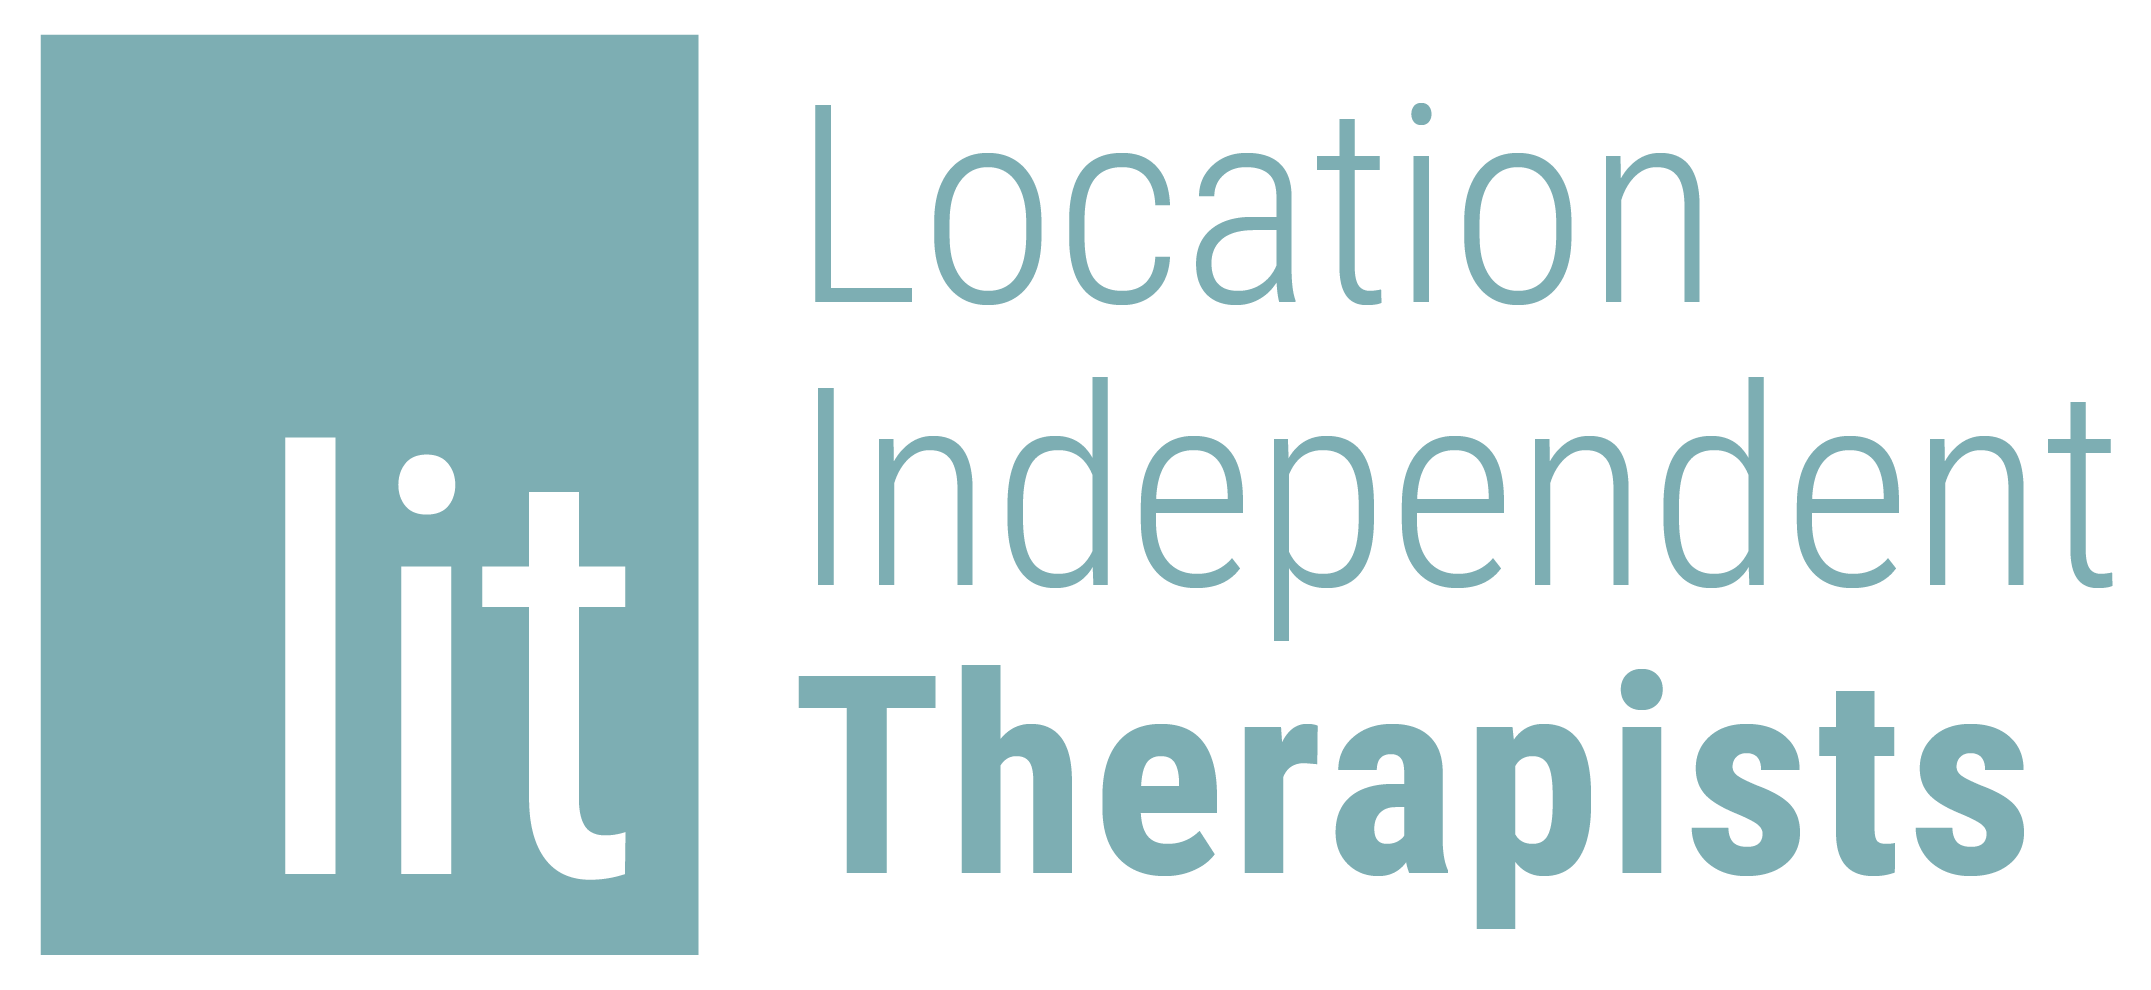 Location Independent Therapists